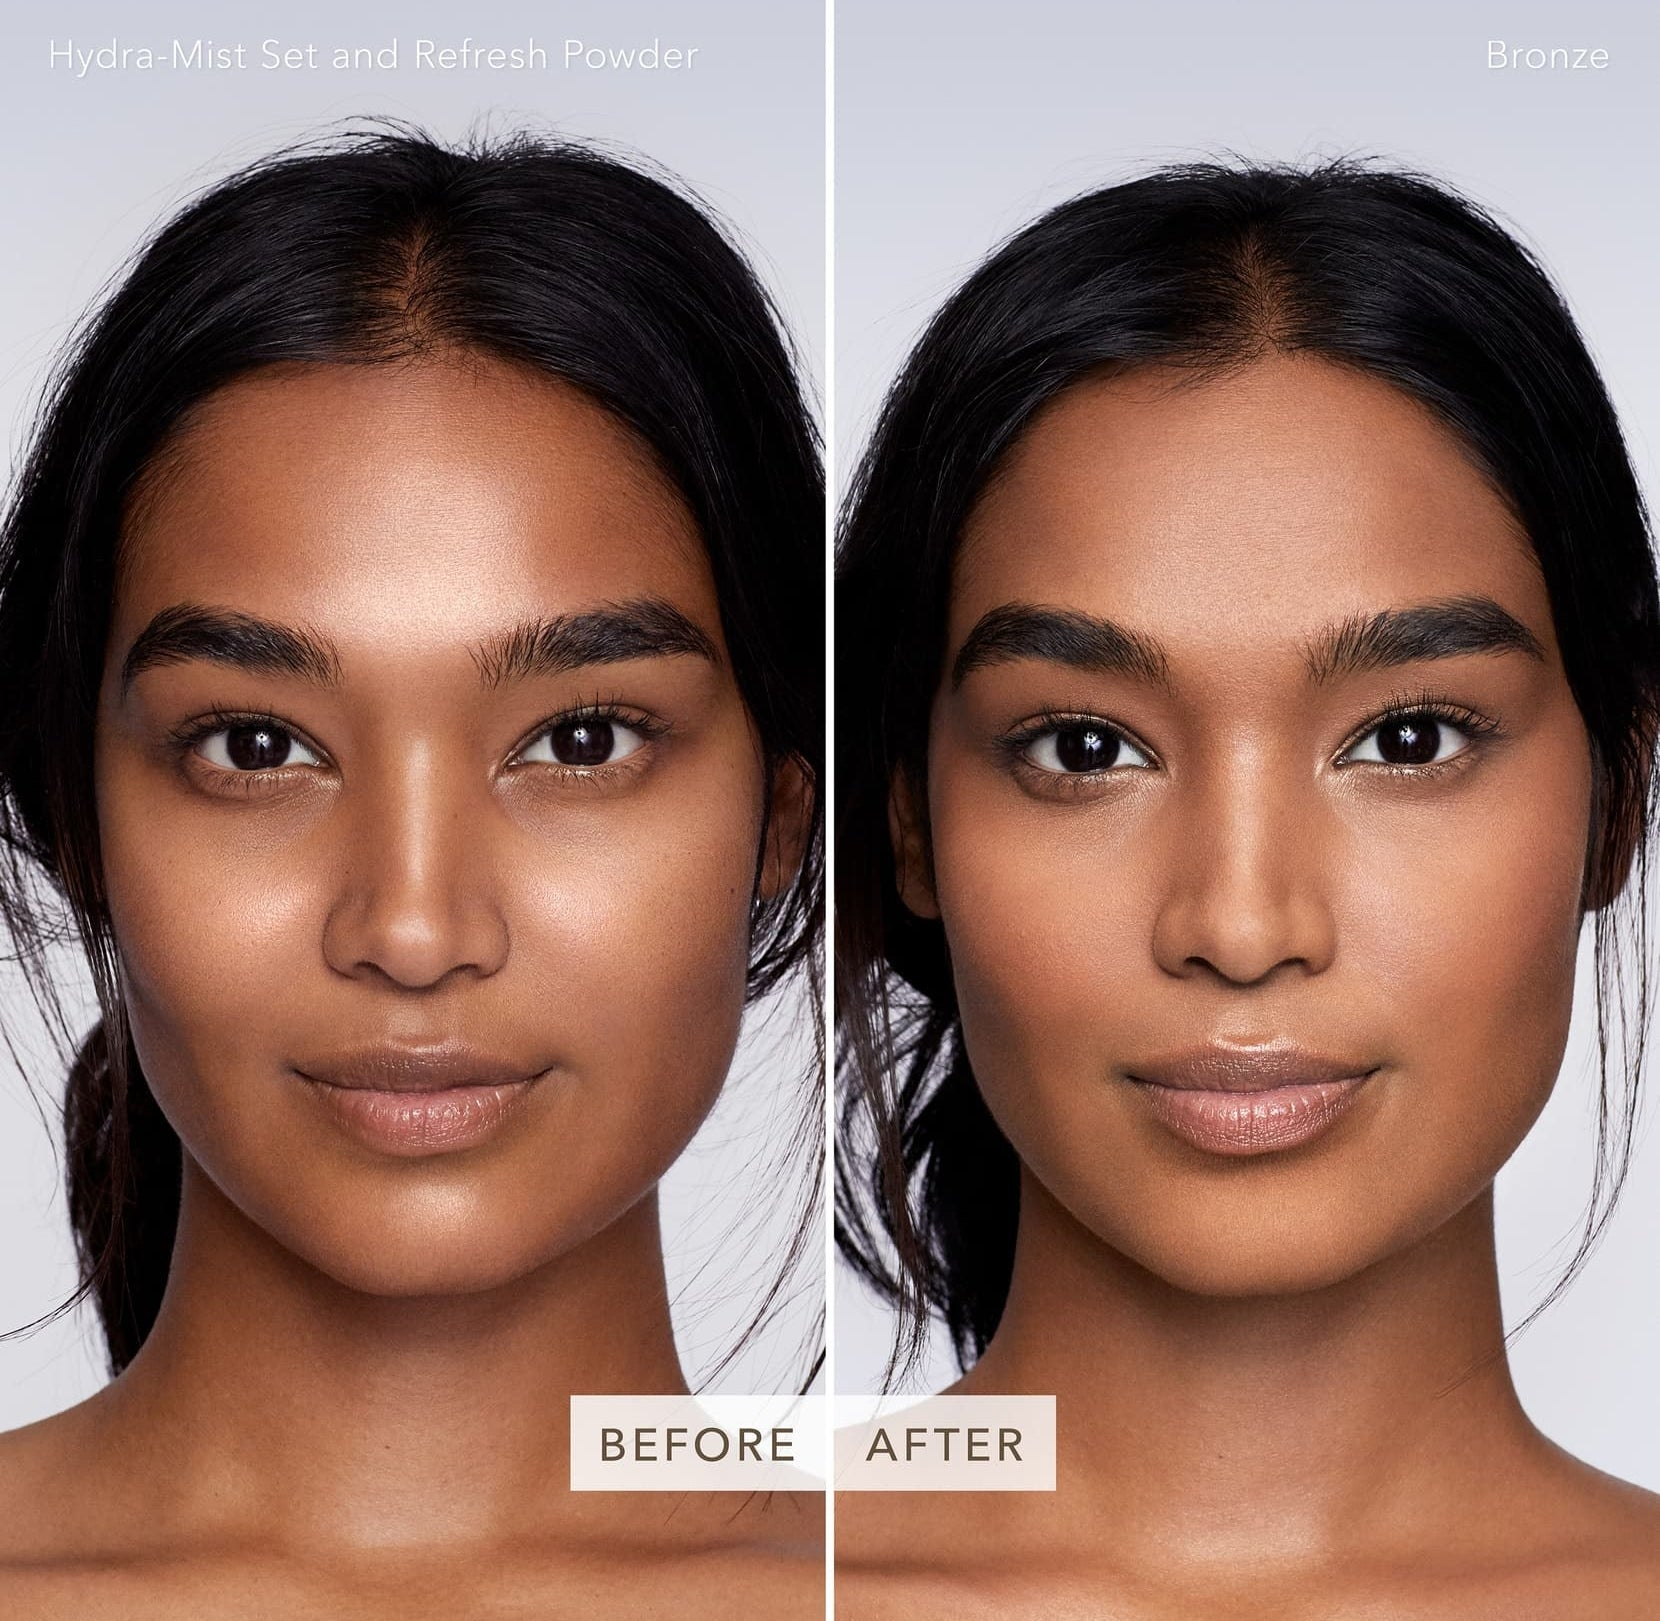 Model's before-and-after to show brightening effects of the powder